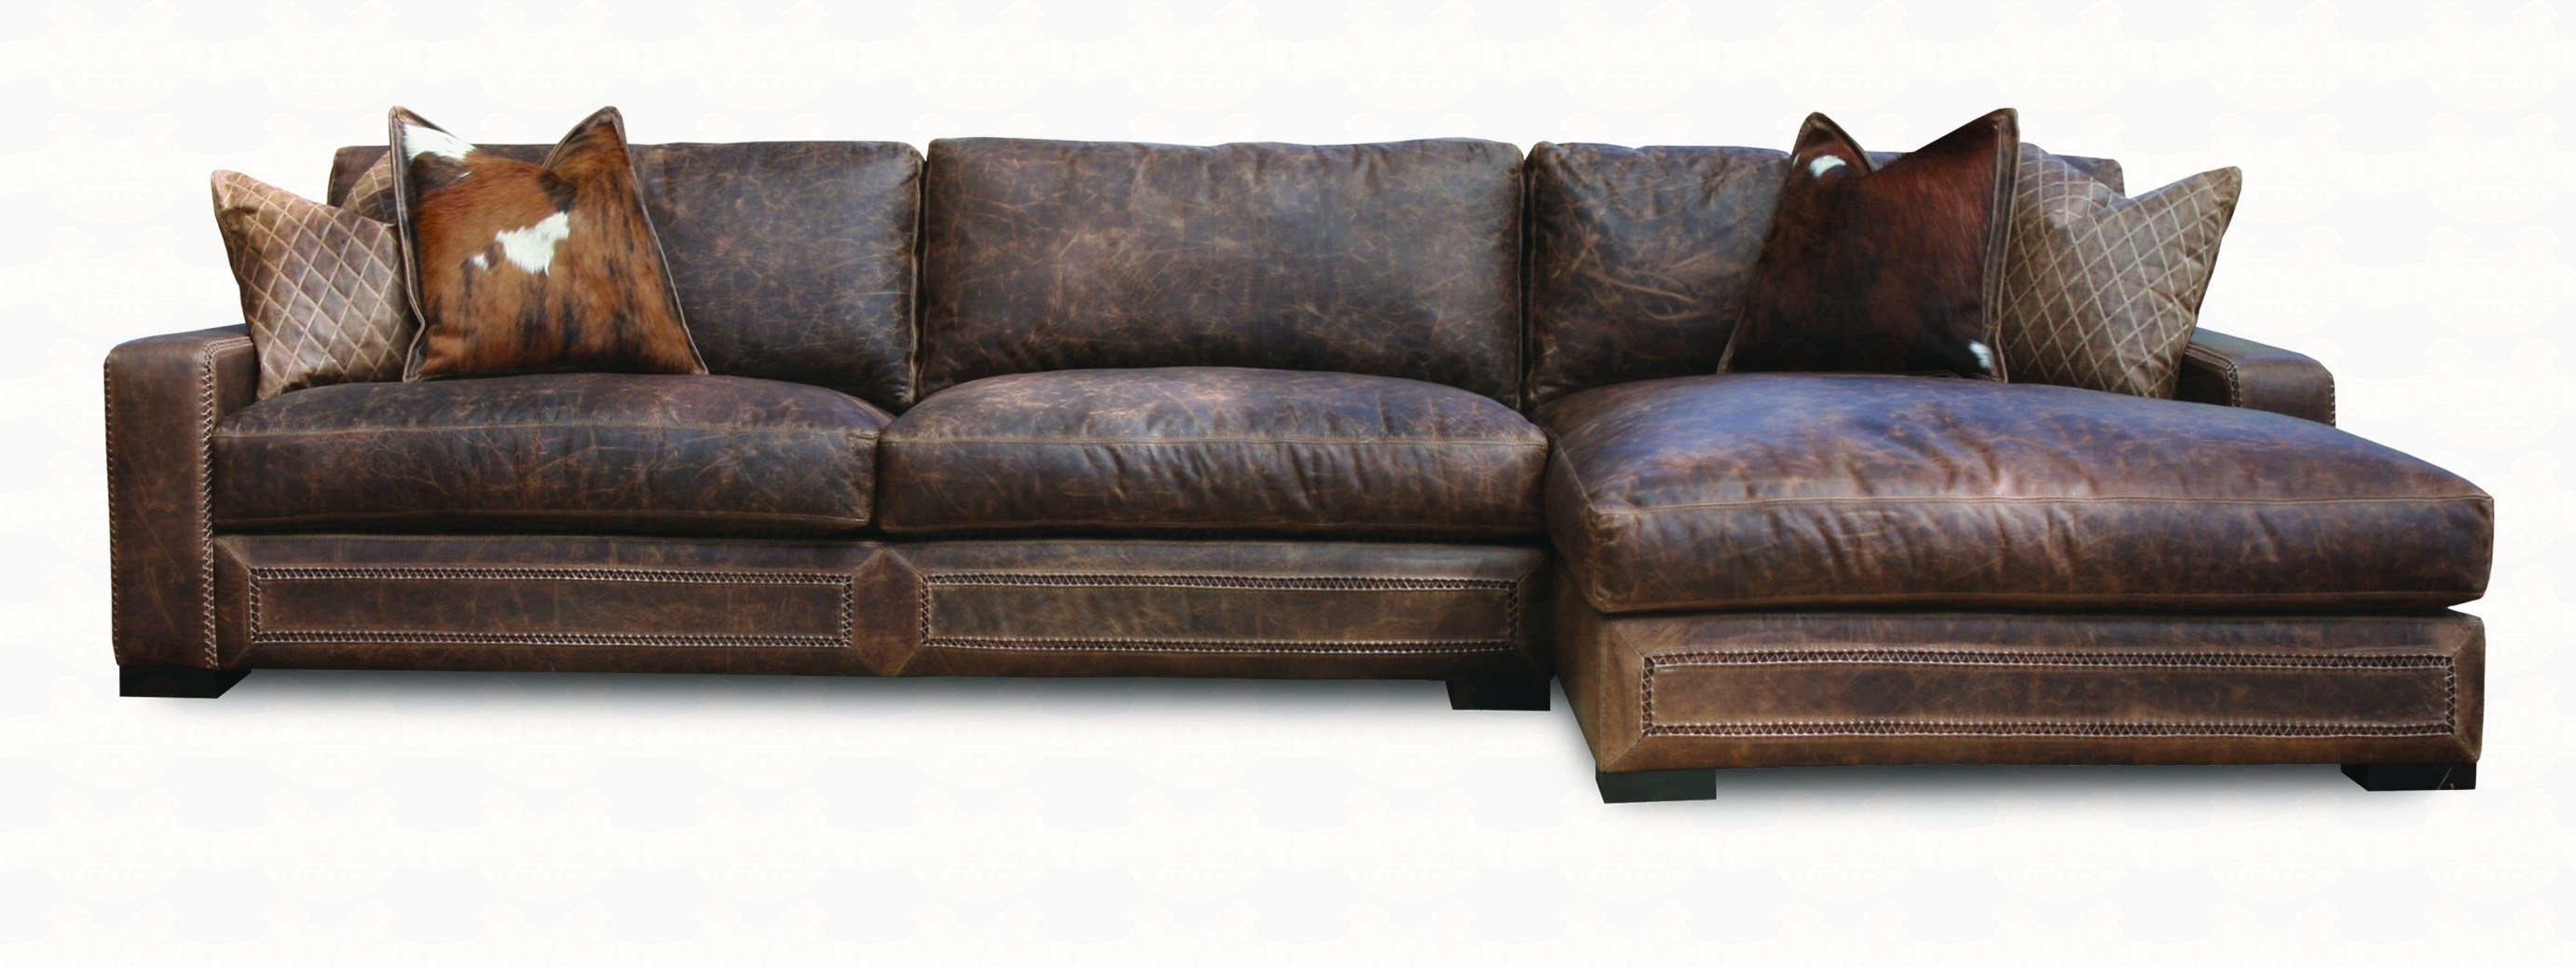 Downtown Cowboy Leather Sectional Sofa Collection | Santa Fe Ranch within Harper Foam 3 Piece Sectionals With Raf Chaise (Image 4 of 30)